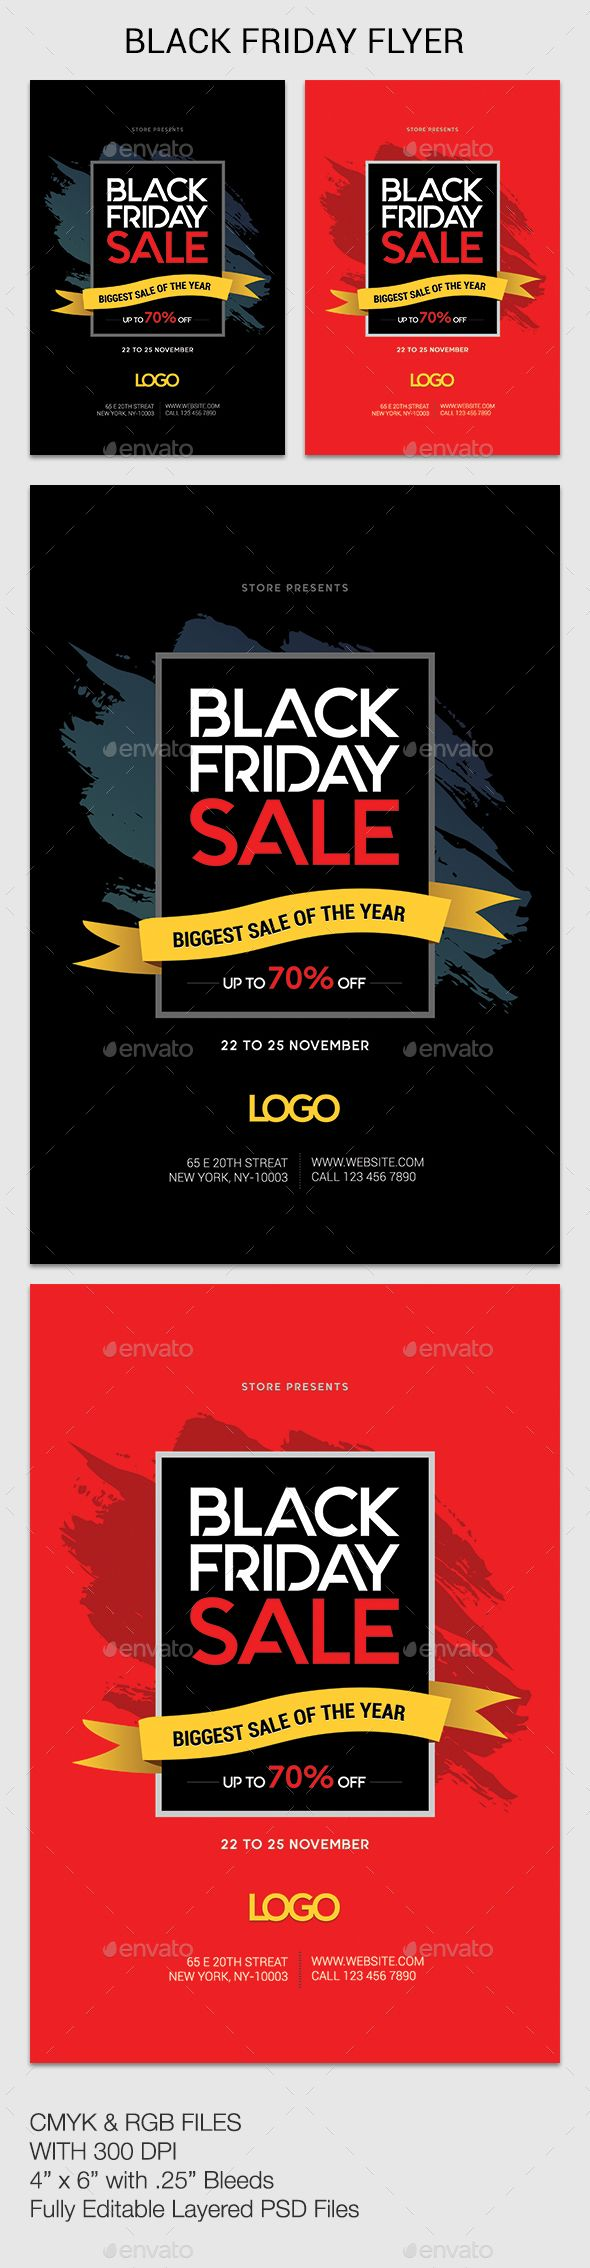 #Black Friday - #Events #Flyers